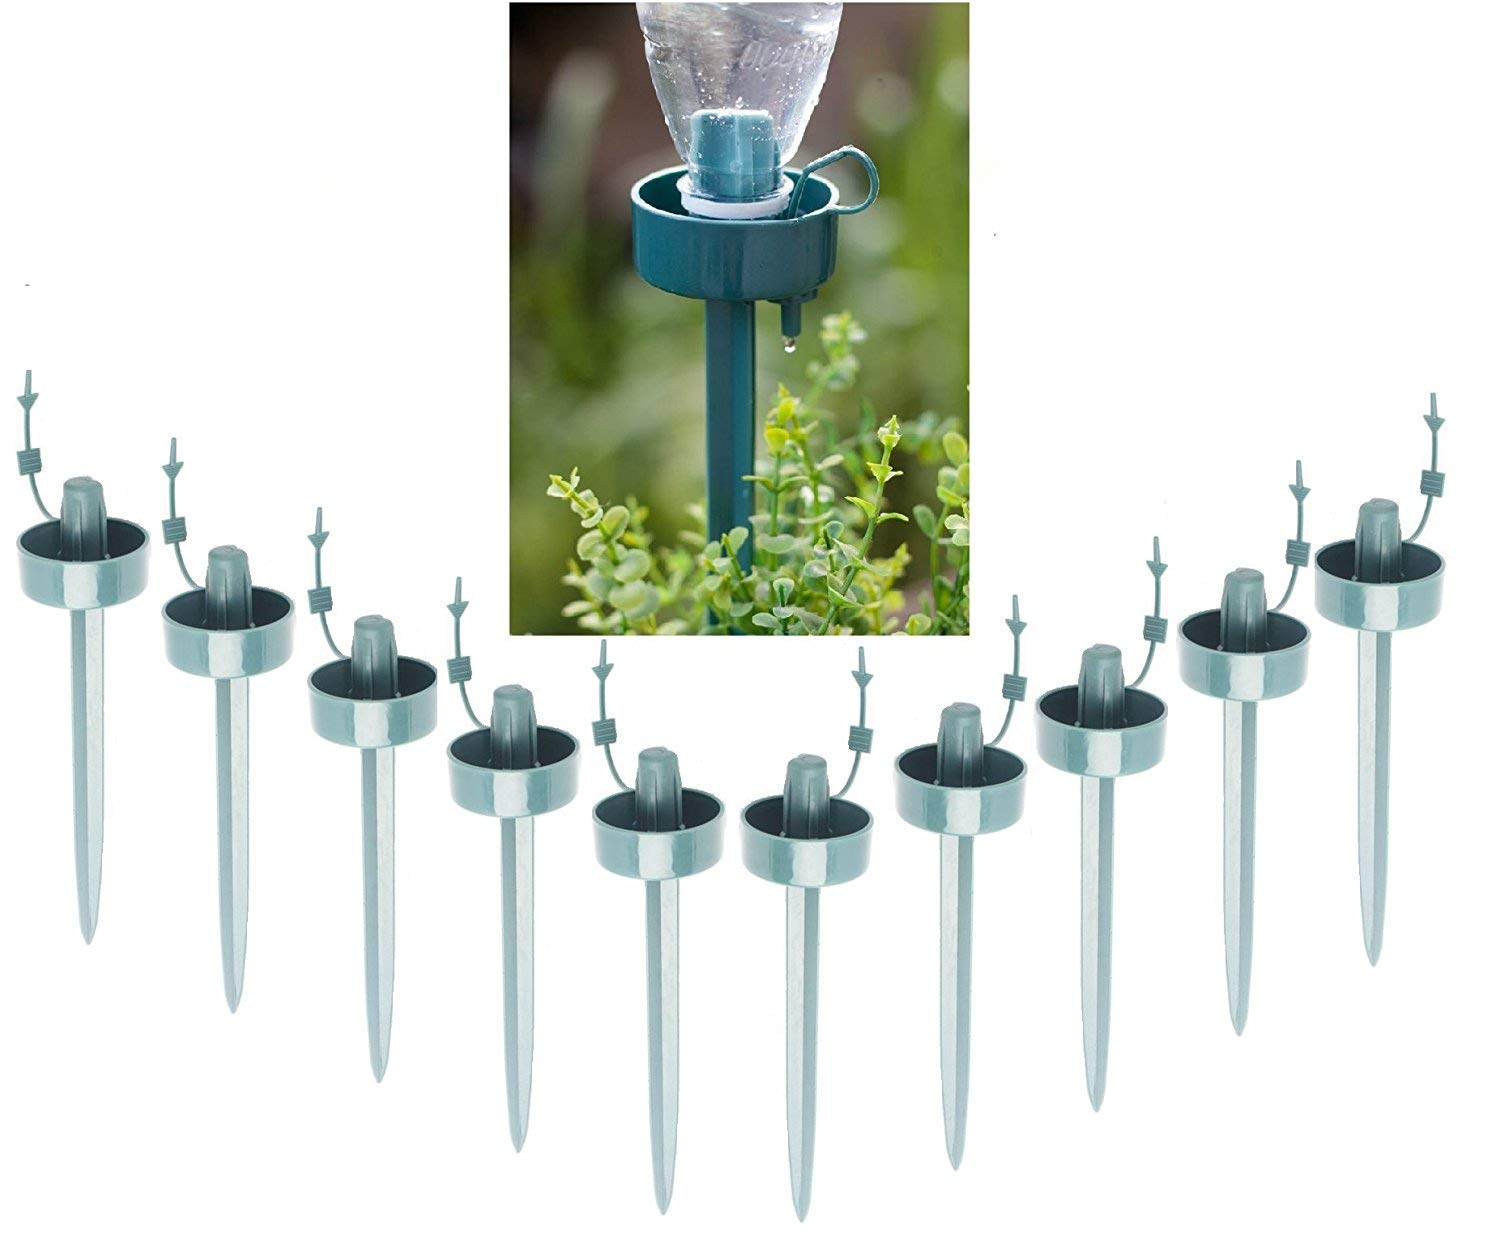 10 Pack Automatic Watering Irrigation Drippers, Garden Plant Flower Self Watering Spikes Device with Adjustable Flow Rate, Vacations Plant Drip Sprinkler Water Watering Kits Agemore